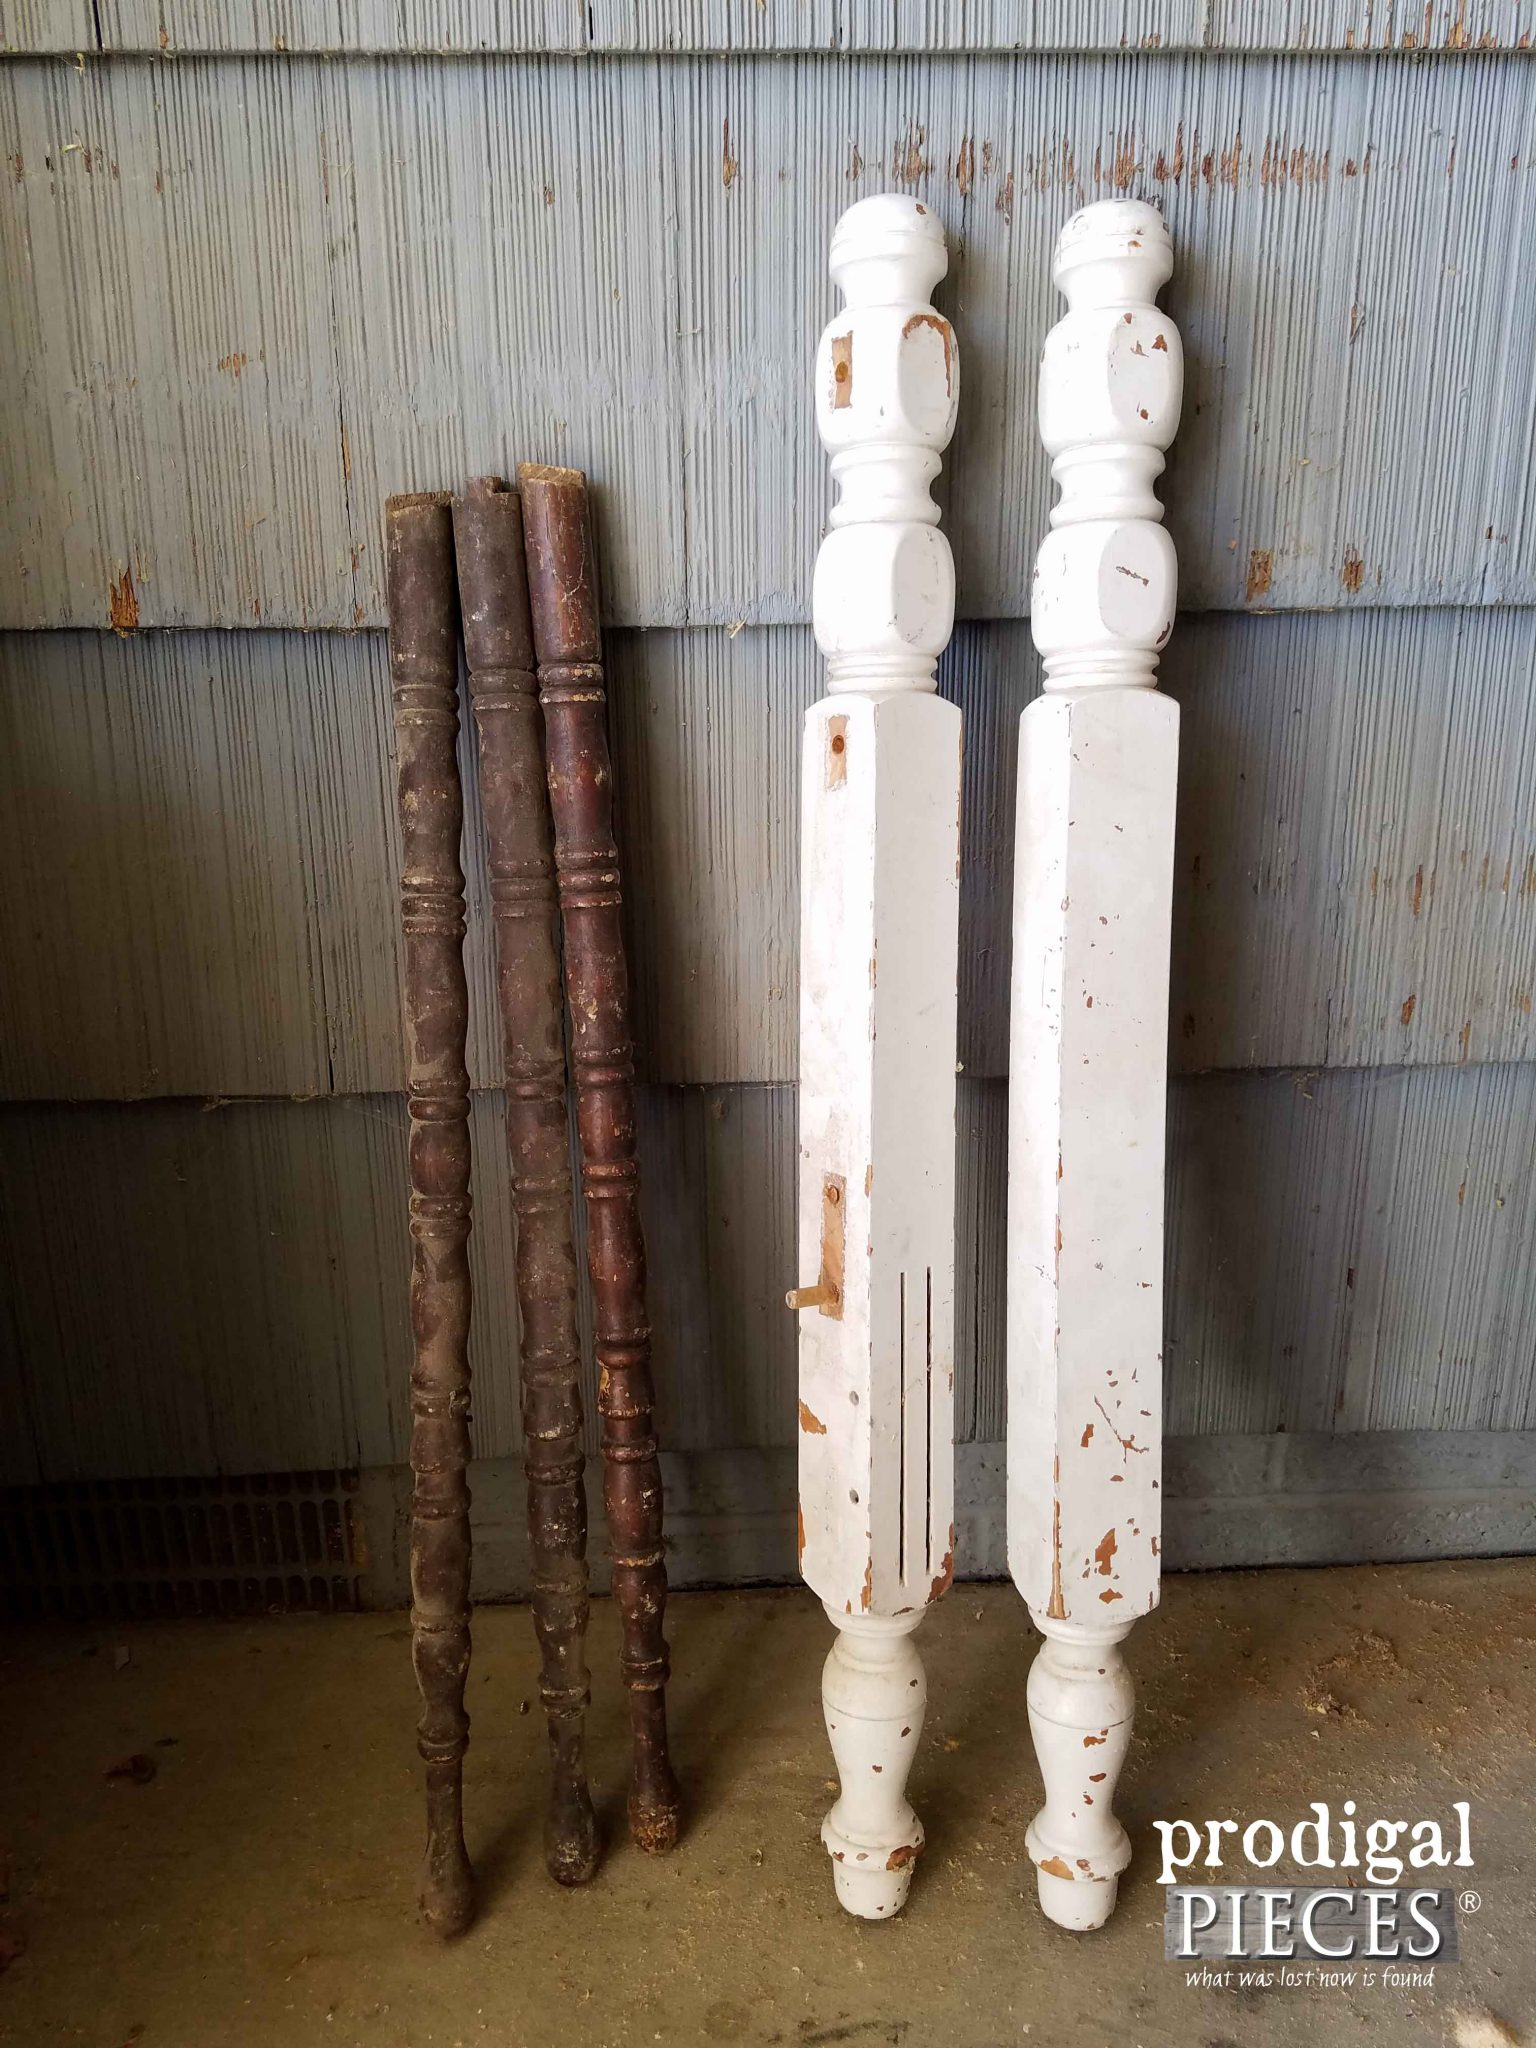 Repurposed Parts from Table and Bed | Prodigal Pieces | prodigalpieces.com